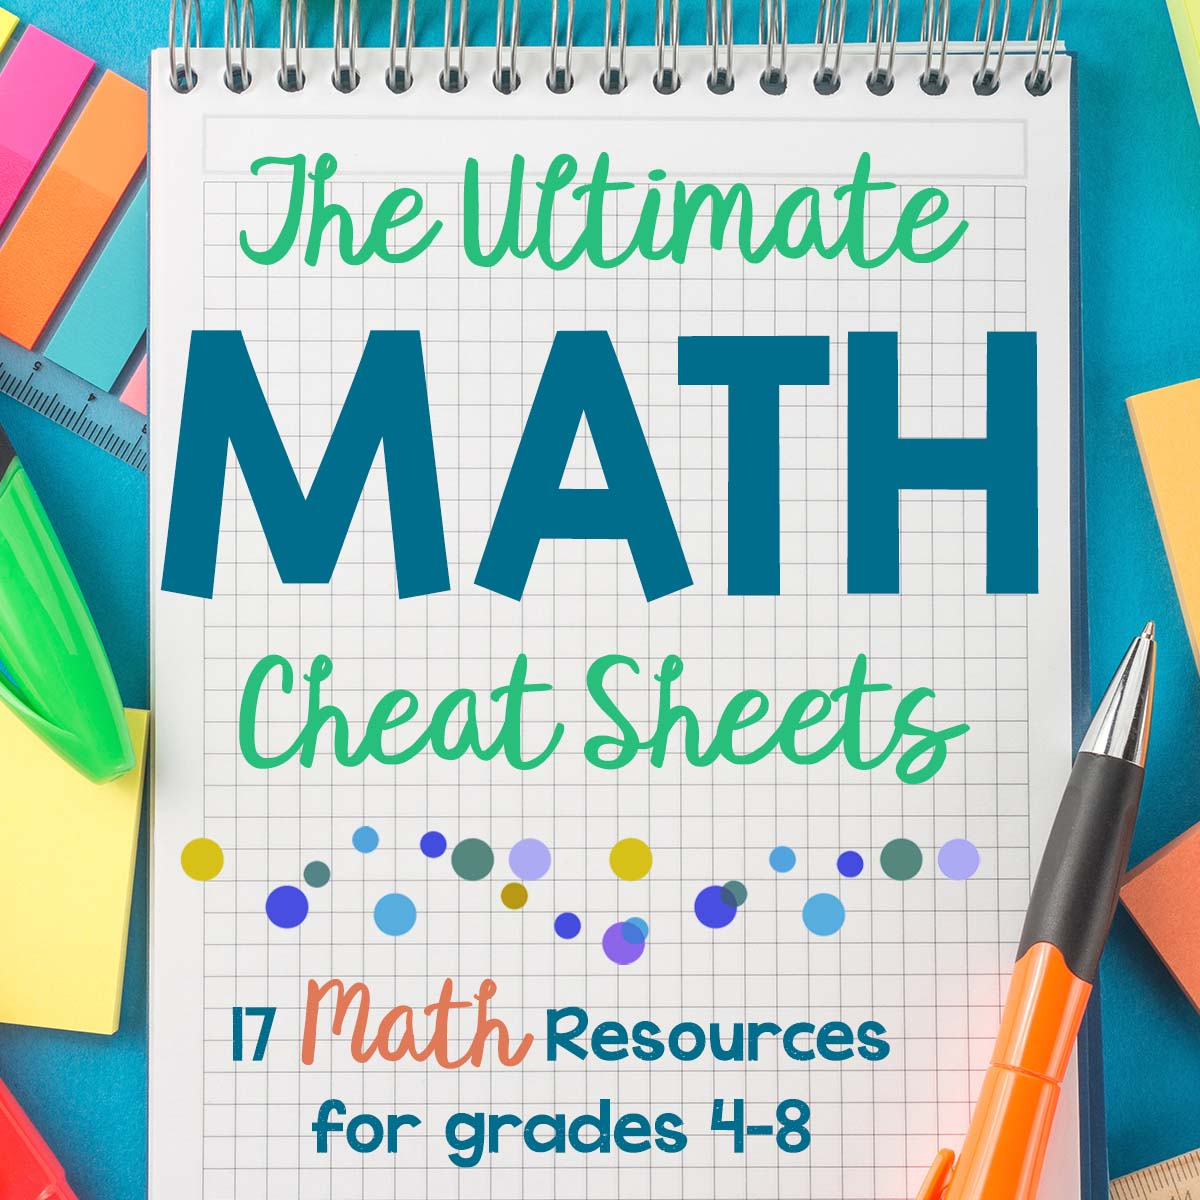 Math Cheat Sheet Free Homeschool Math Resource For Grades 4 8